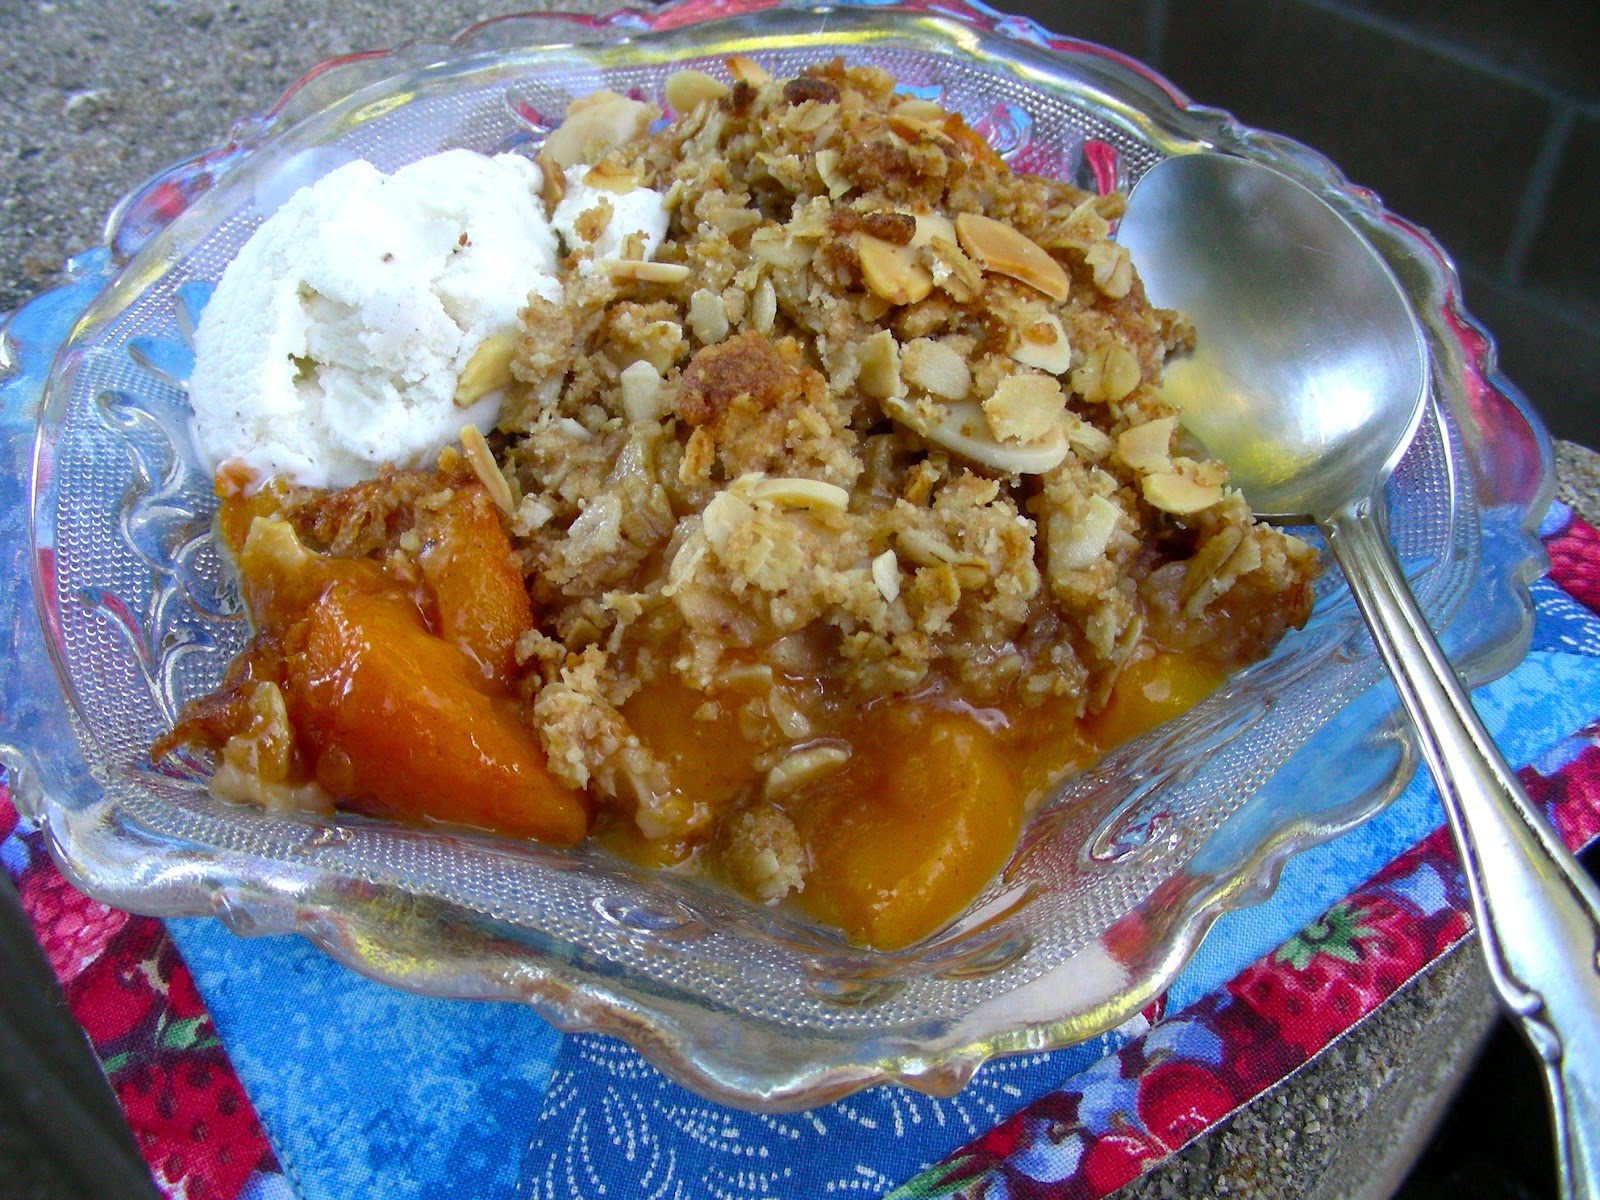 Susan Can Cook: Random Food Fridays - Gluten Free Peach Crisp